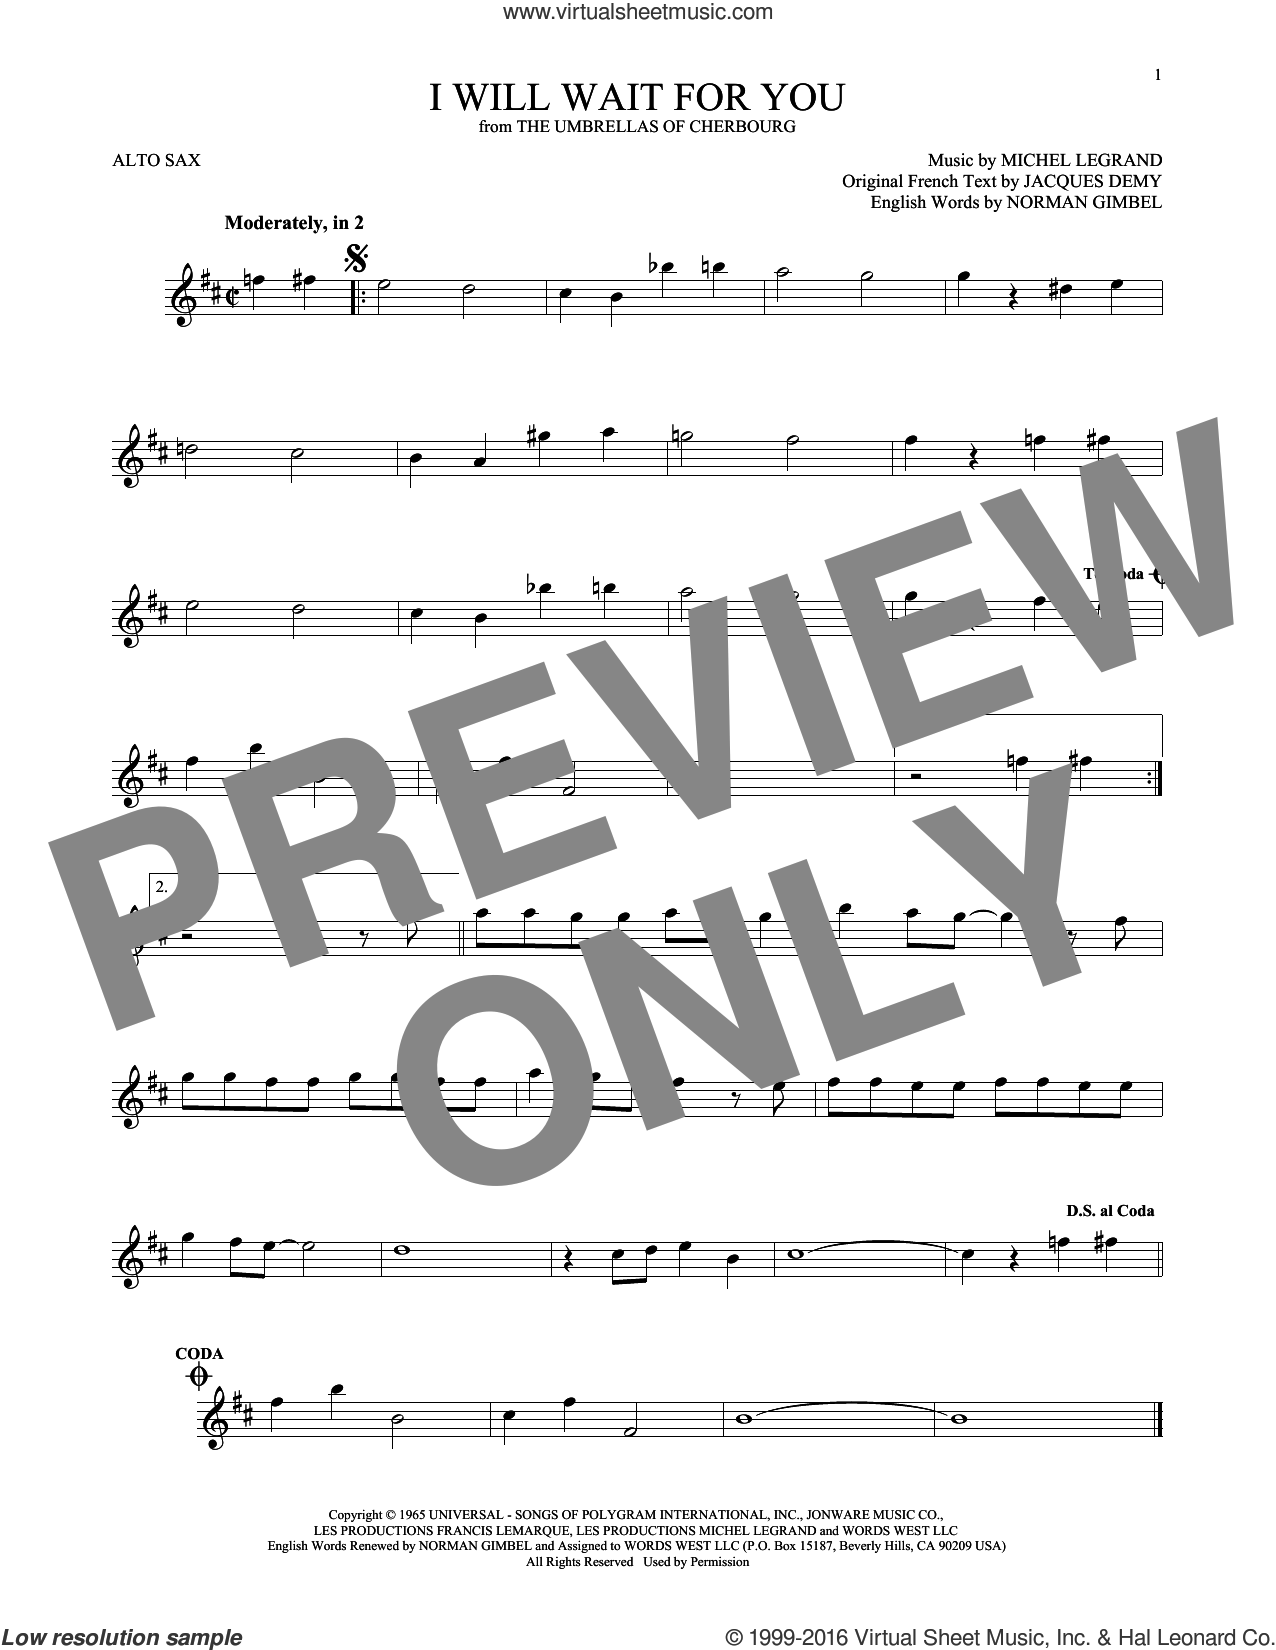 I Will Wait For You sheet music for alto saxophone solo by Michel Legrand, Jacques Demy and Norman Gimbel, intermediate skill level